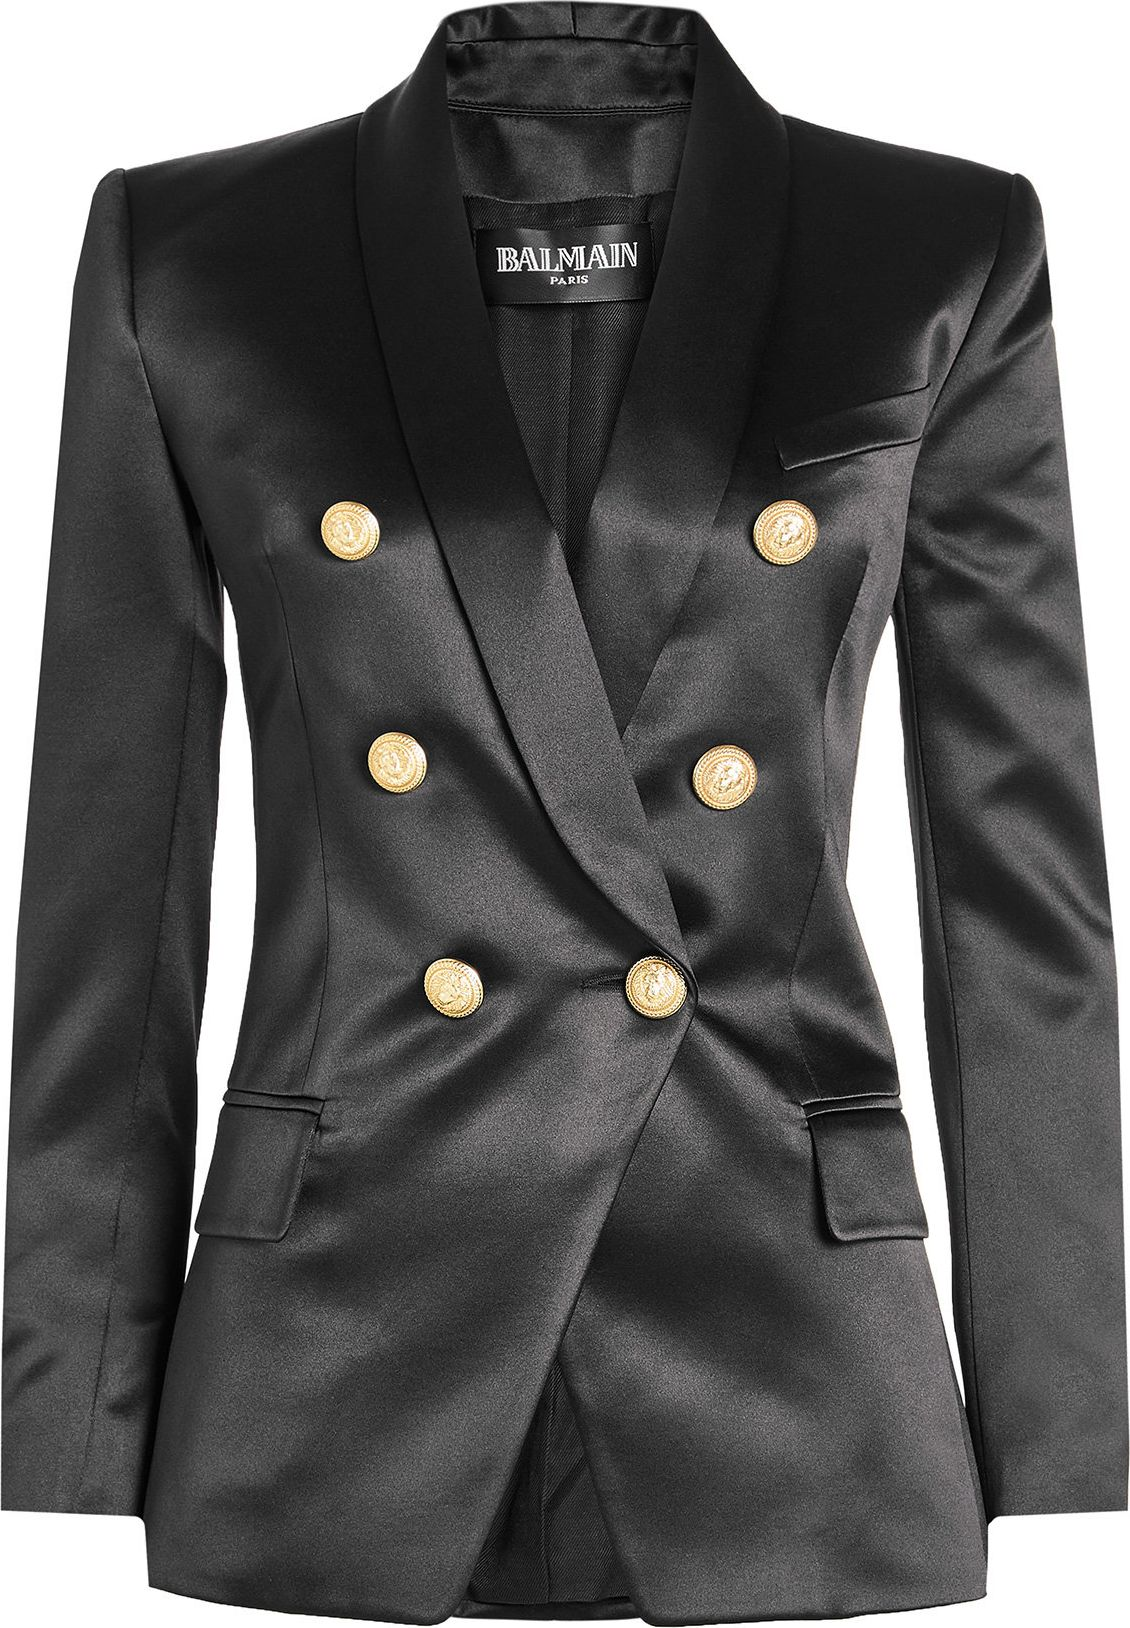 Balmain - Silk Blazer with Embossed Buttons